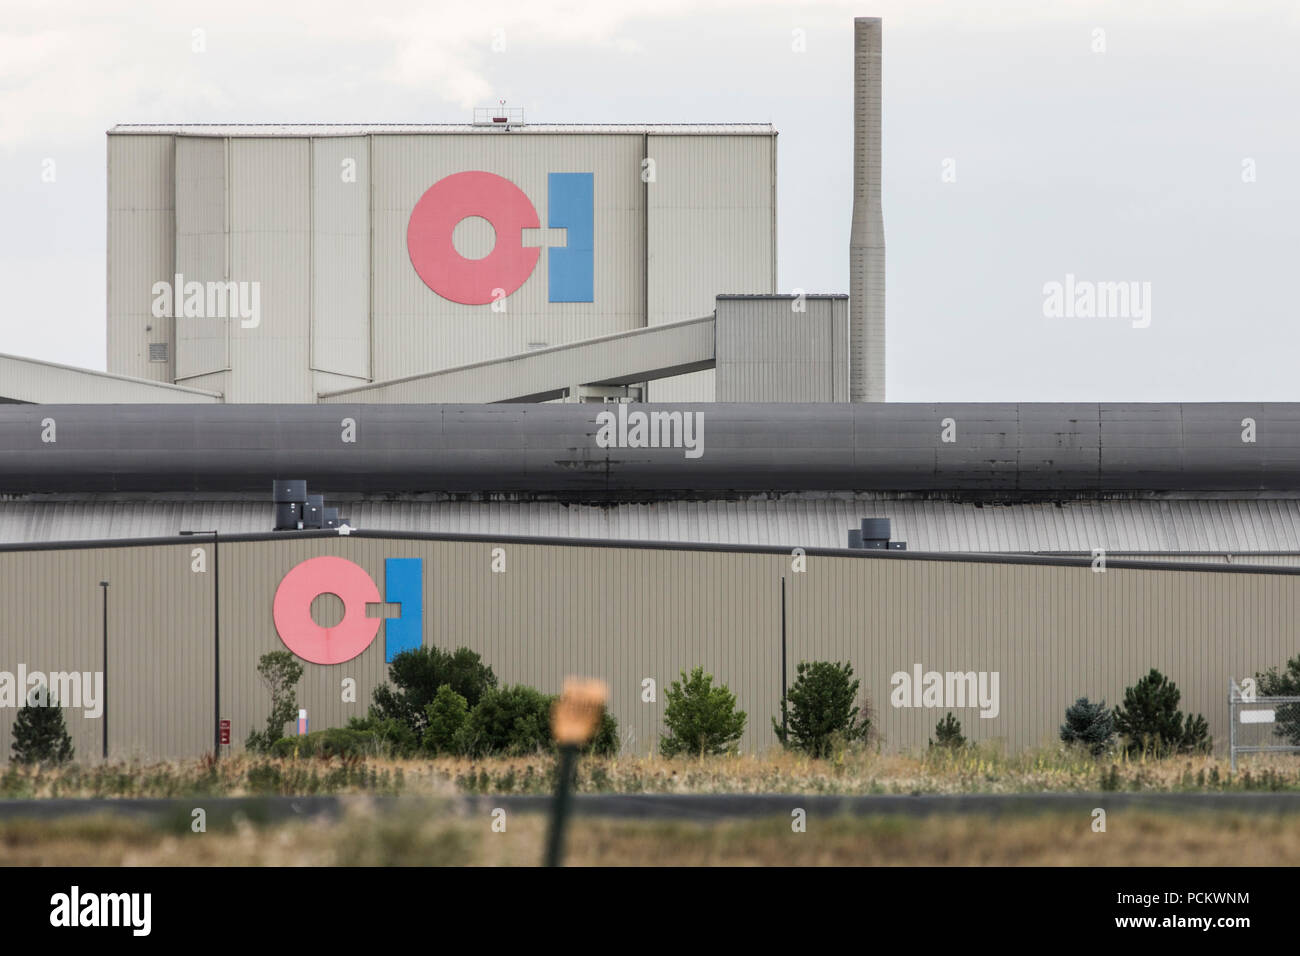 A logo sign outside of a facility occupied by Owens-Illinois Inc., in Windsor, Colorado, on July 21, 2018. - Stock Image